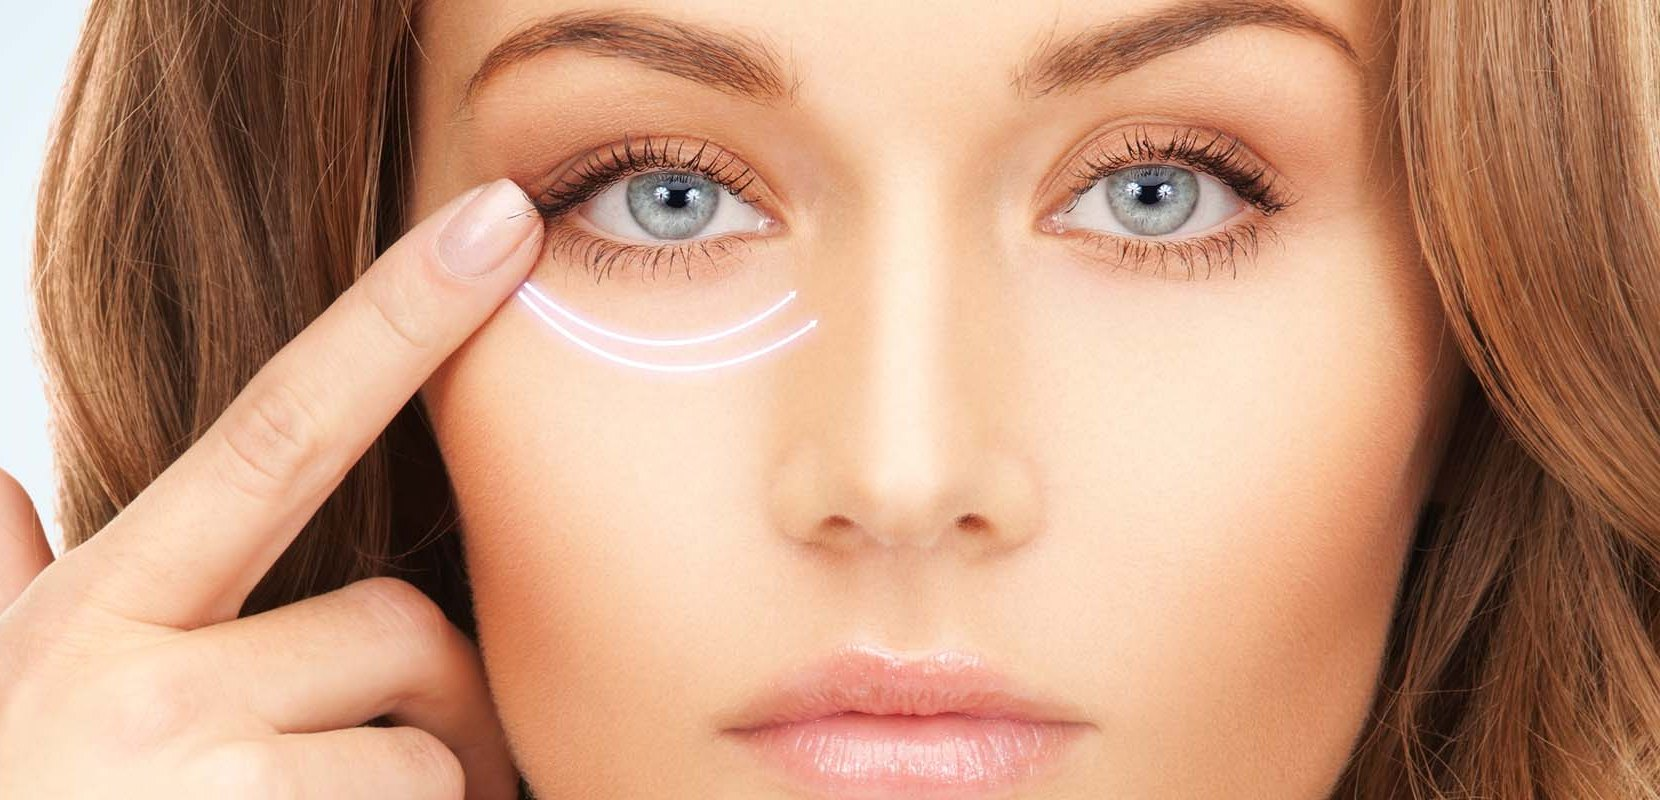 Tear Trough Fillers - 5 Things You Need to Know